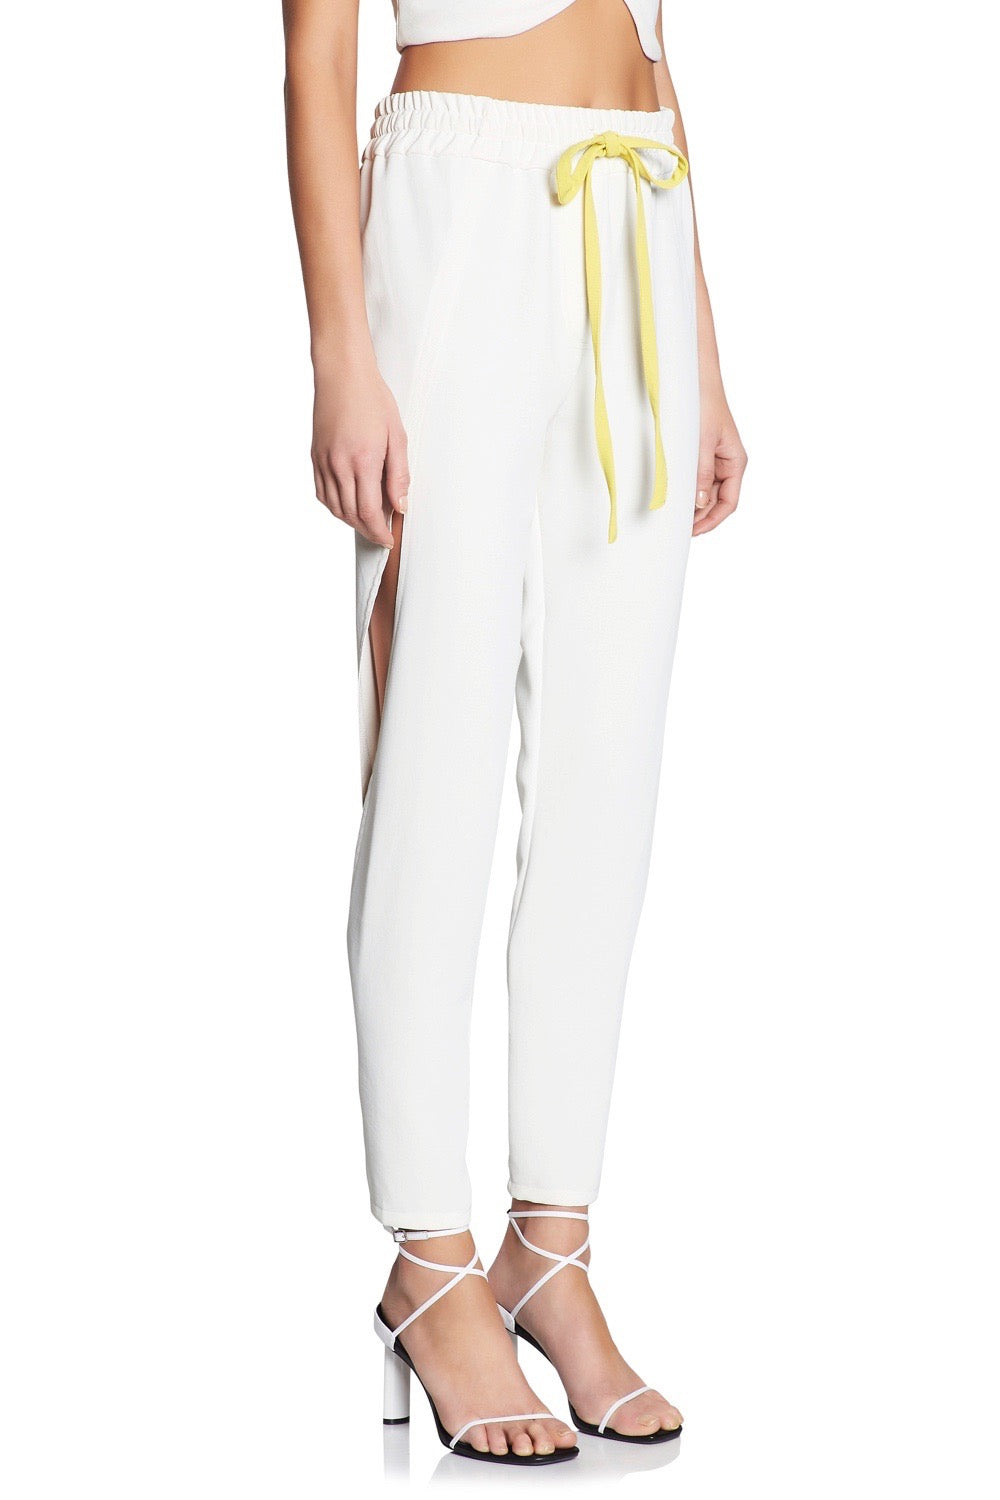 COLOUR IN MOTION PANT